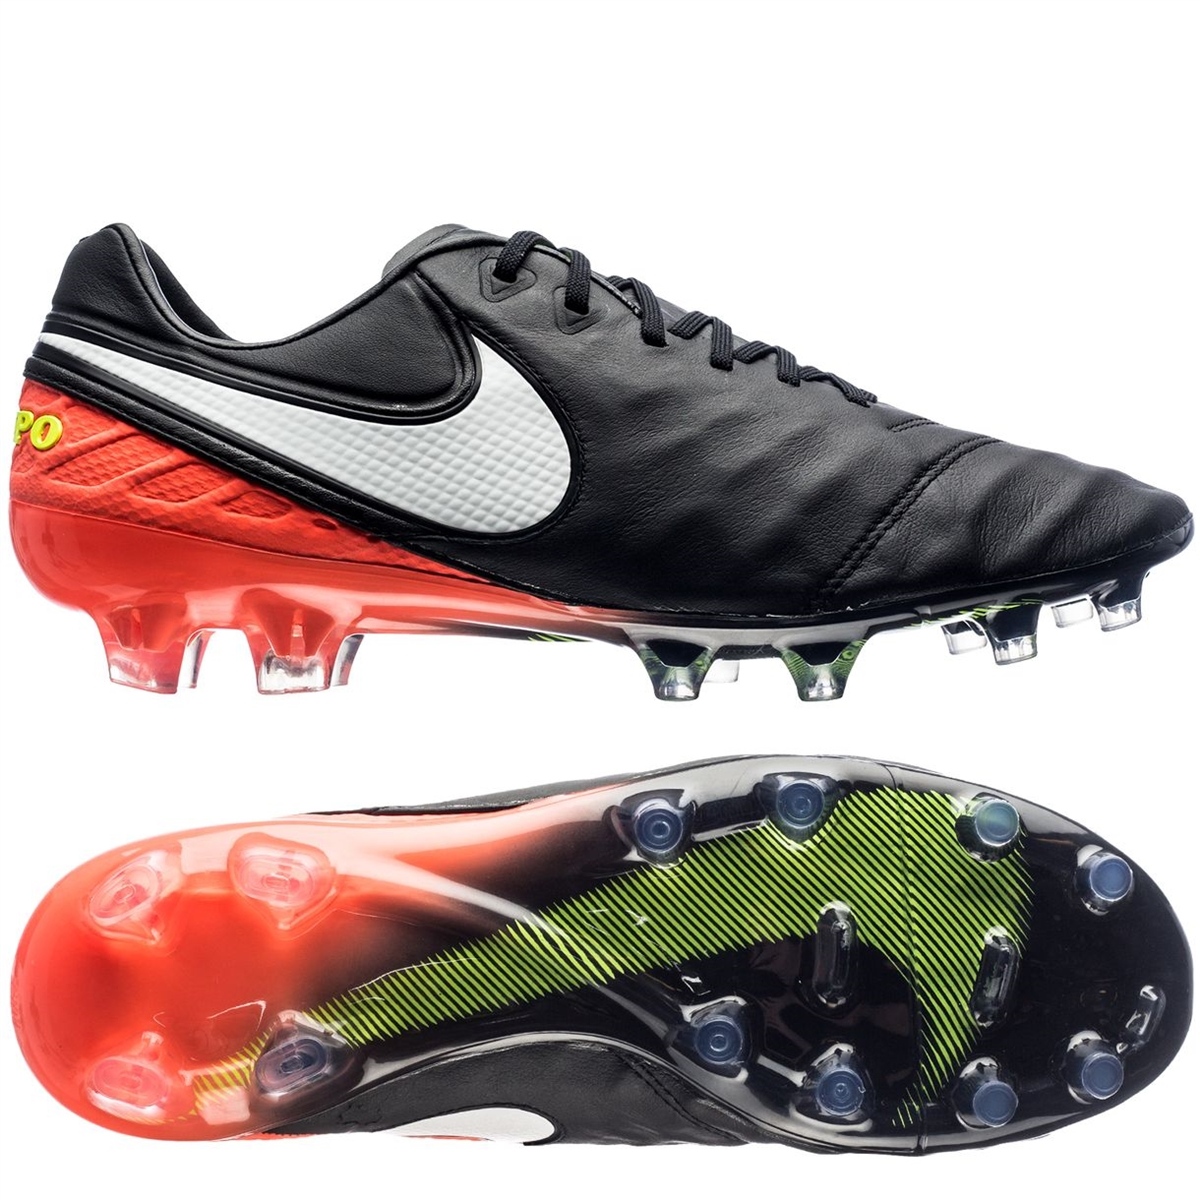 Nike Mens Soccer Shoes  - Nike Tiempo Legend VI SG-PRO Black/Black/White C17l9520